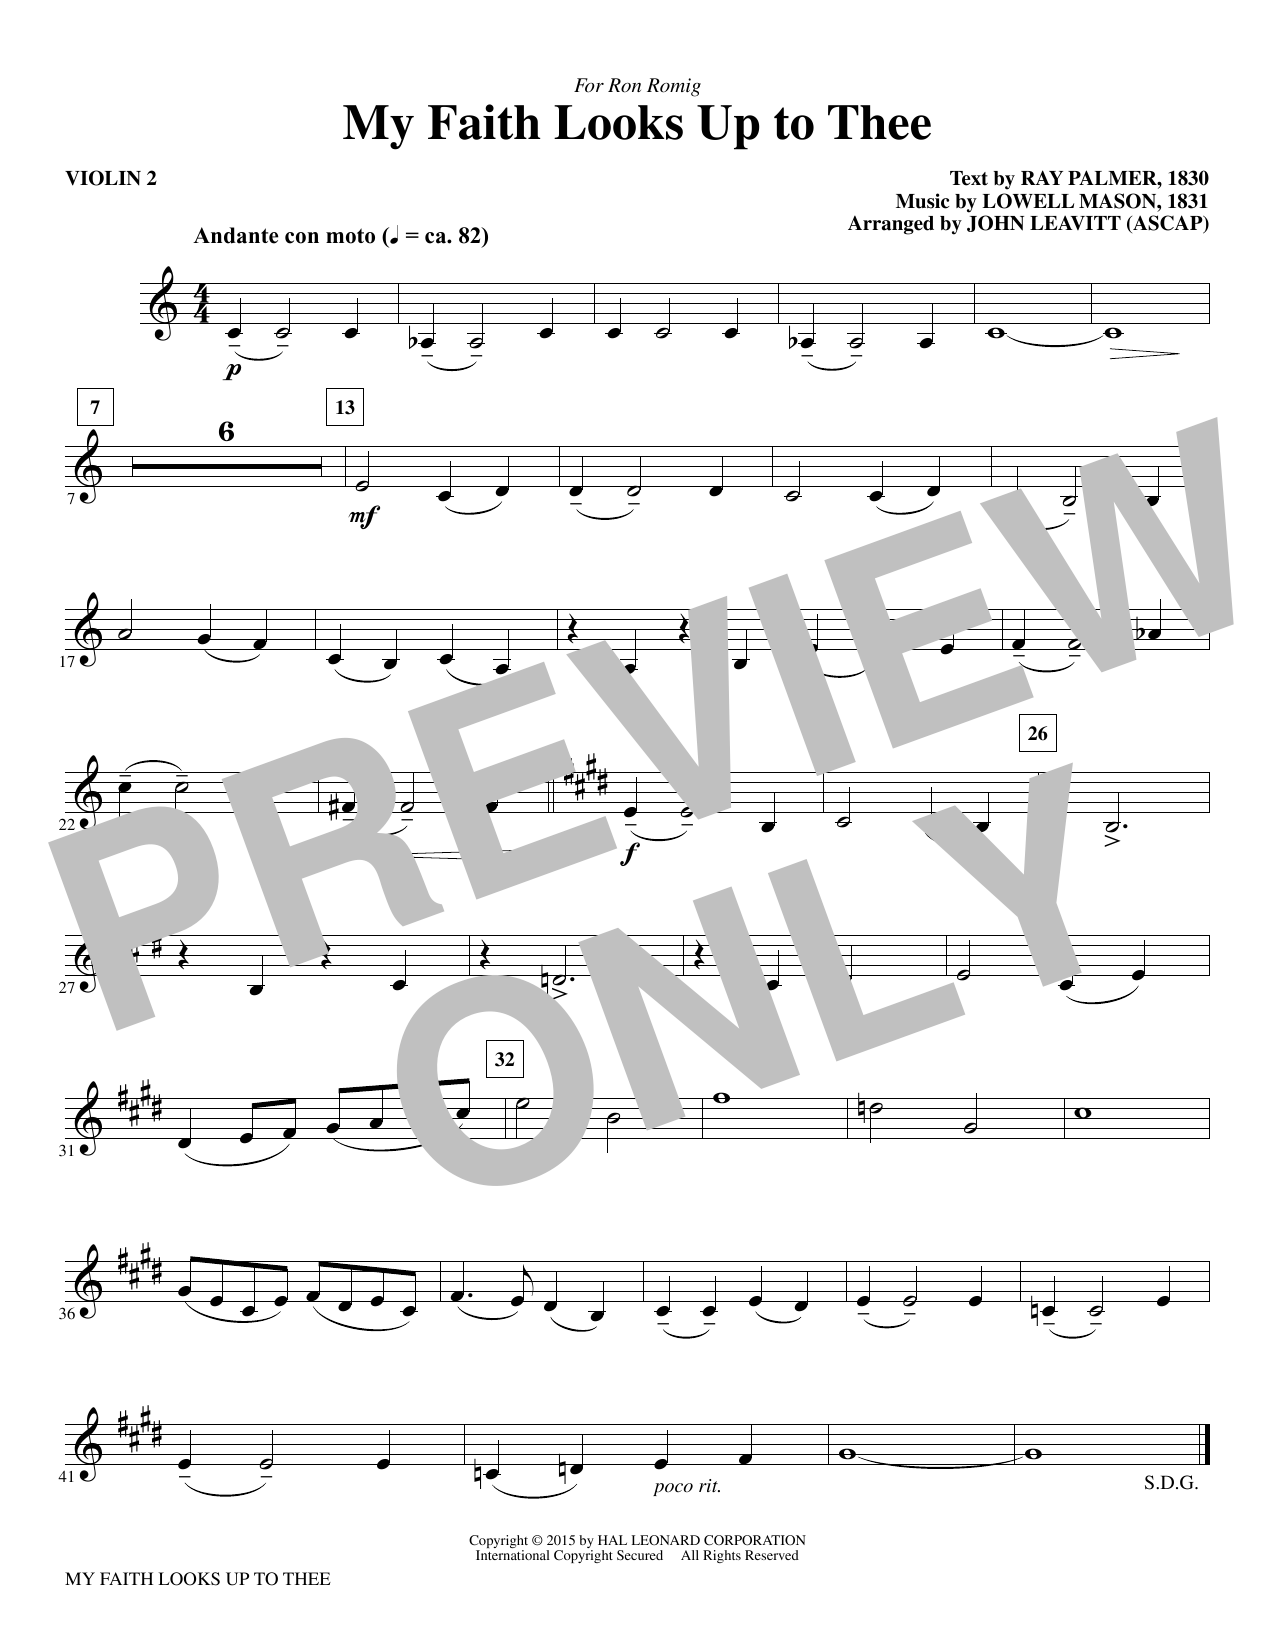 My Faith Looks Up To Thee - Violin 2 sheet music